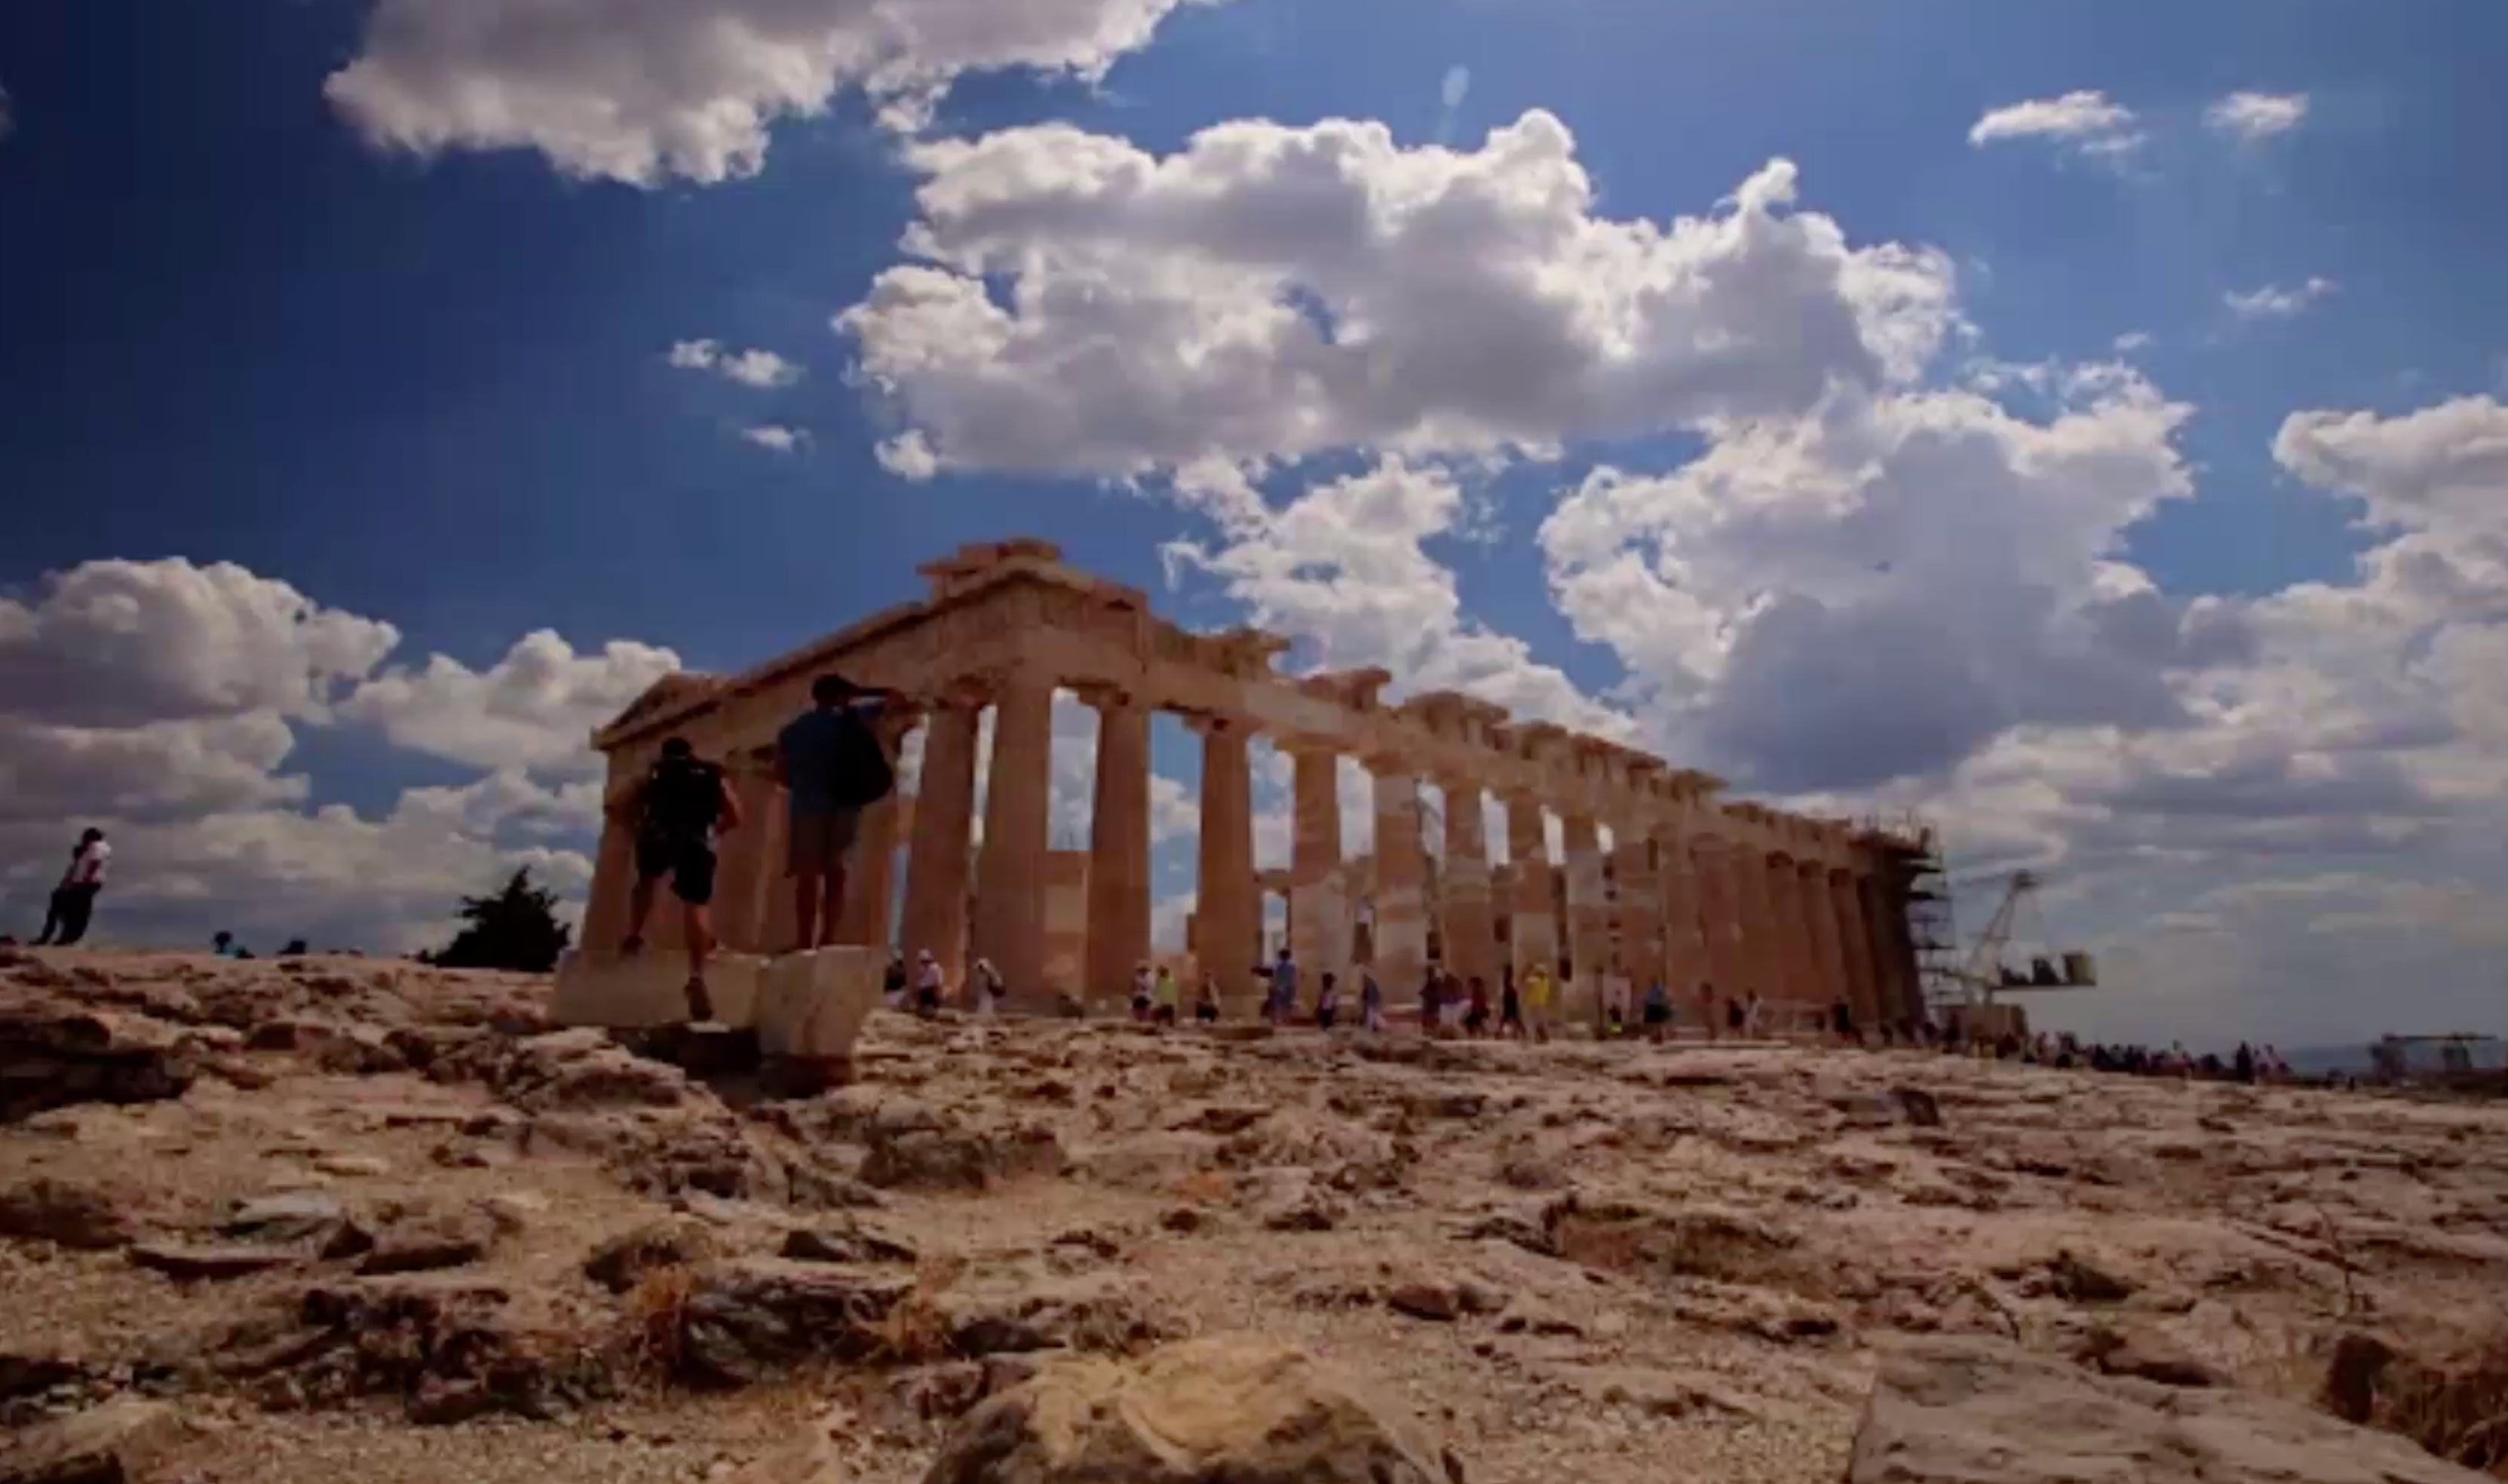 Cheap Flights To Greece Are On Sale For 393 Round Trip